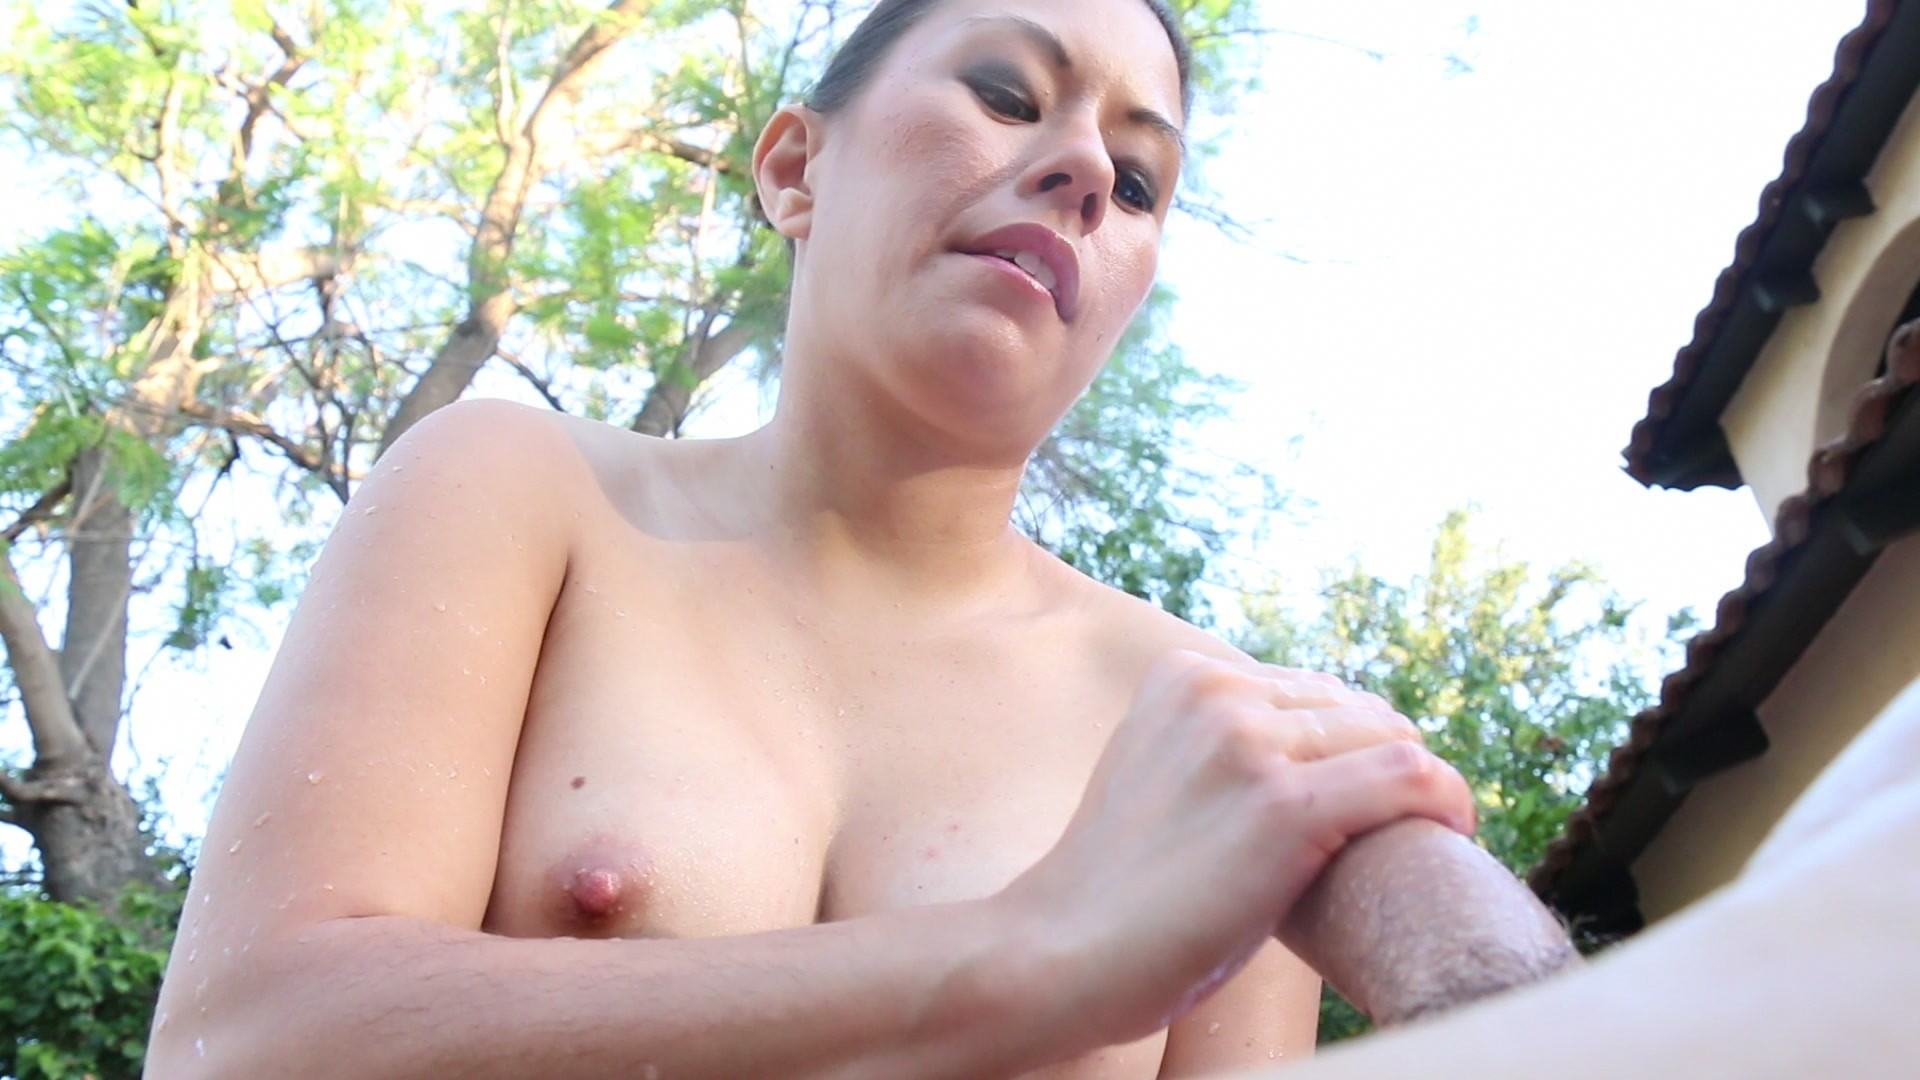 countdown to cum handjob hunnies - Handjob Hunnies: All Hands On Dick